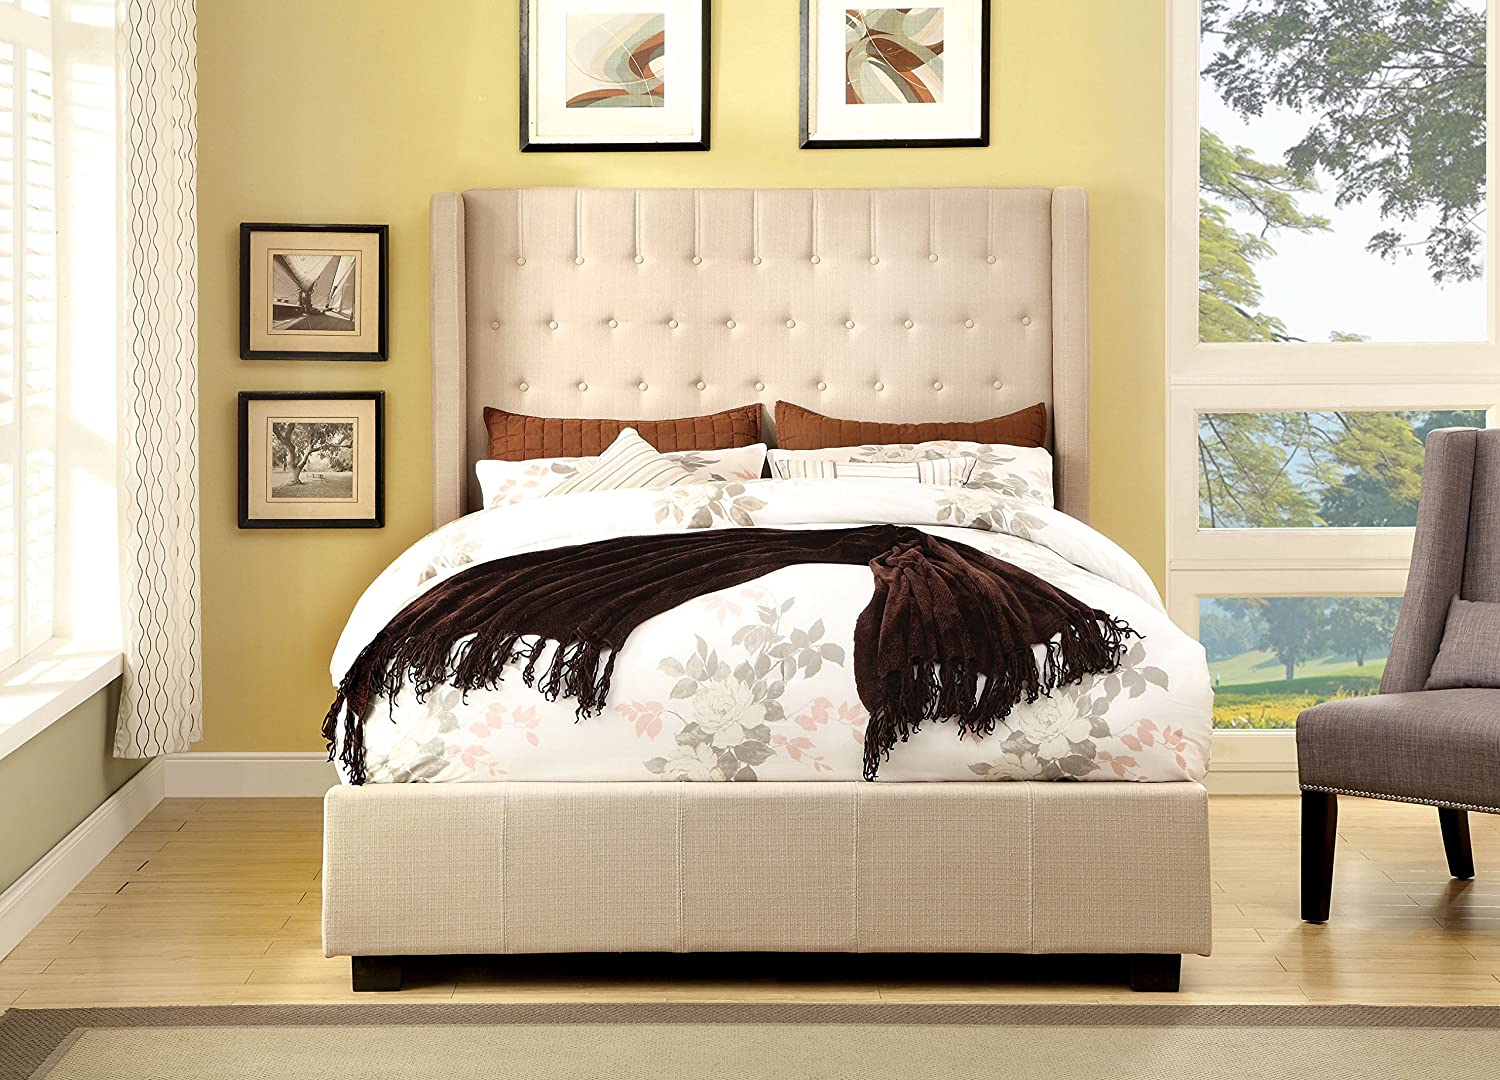 Amazon.com: Furniture of America Minka Leatherette Platform Bed with High  Panel Headboard, California King, Silver: Kitchen & Dining